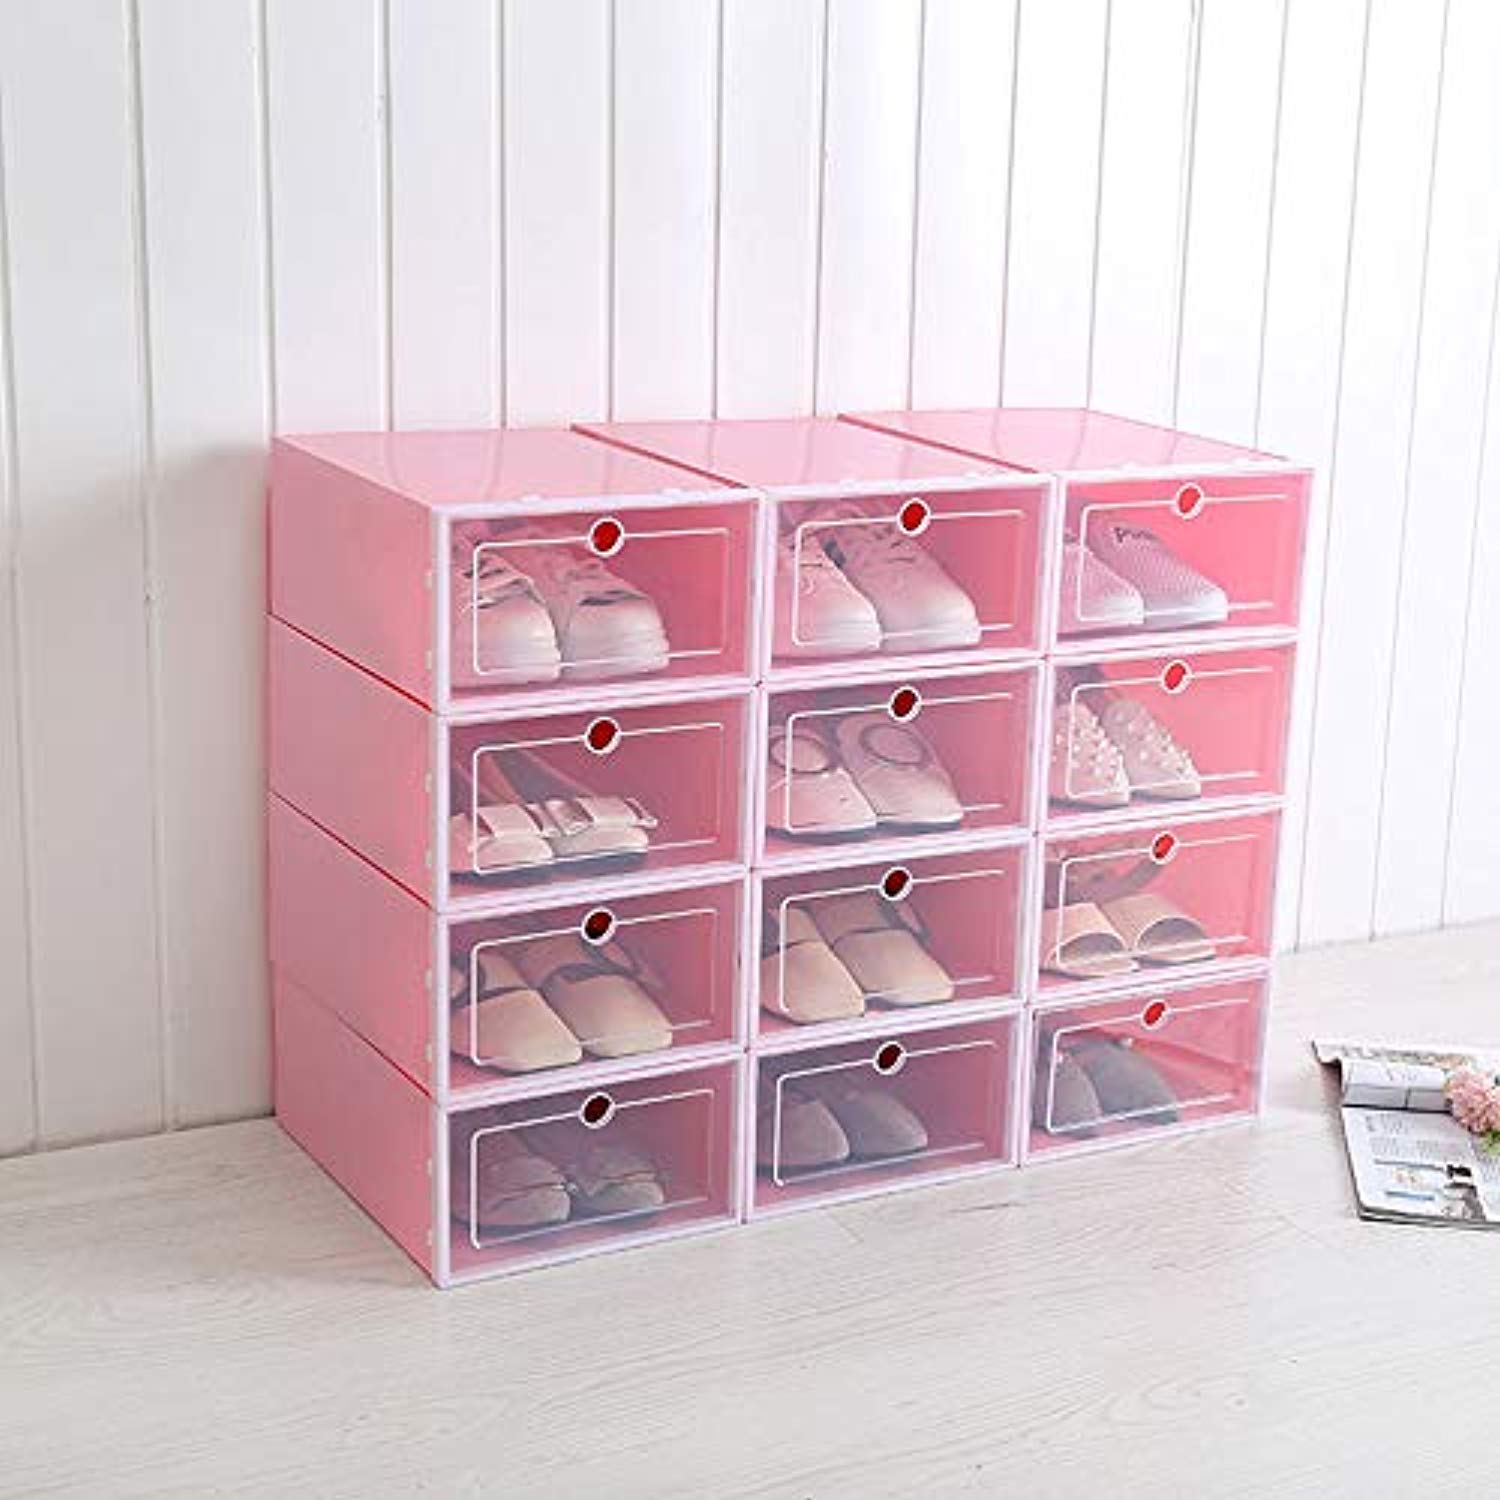 VIOLETY 3pc Storage Shoes Box Clear Plastic Foldable Stackable Shoe Container Closet Shelf Organizer